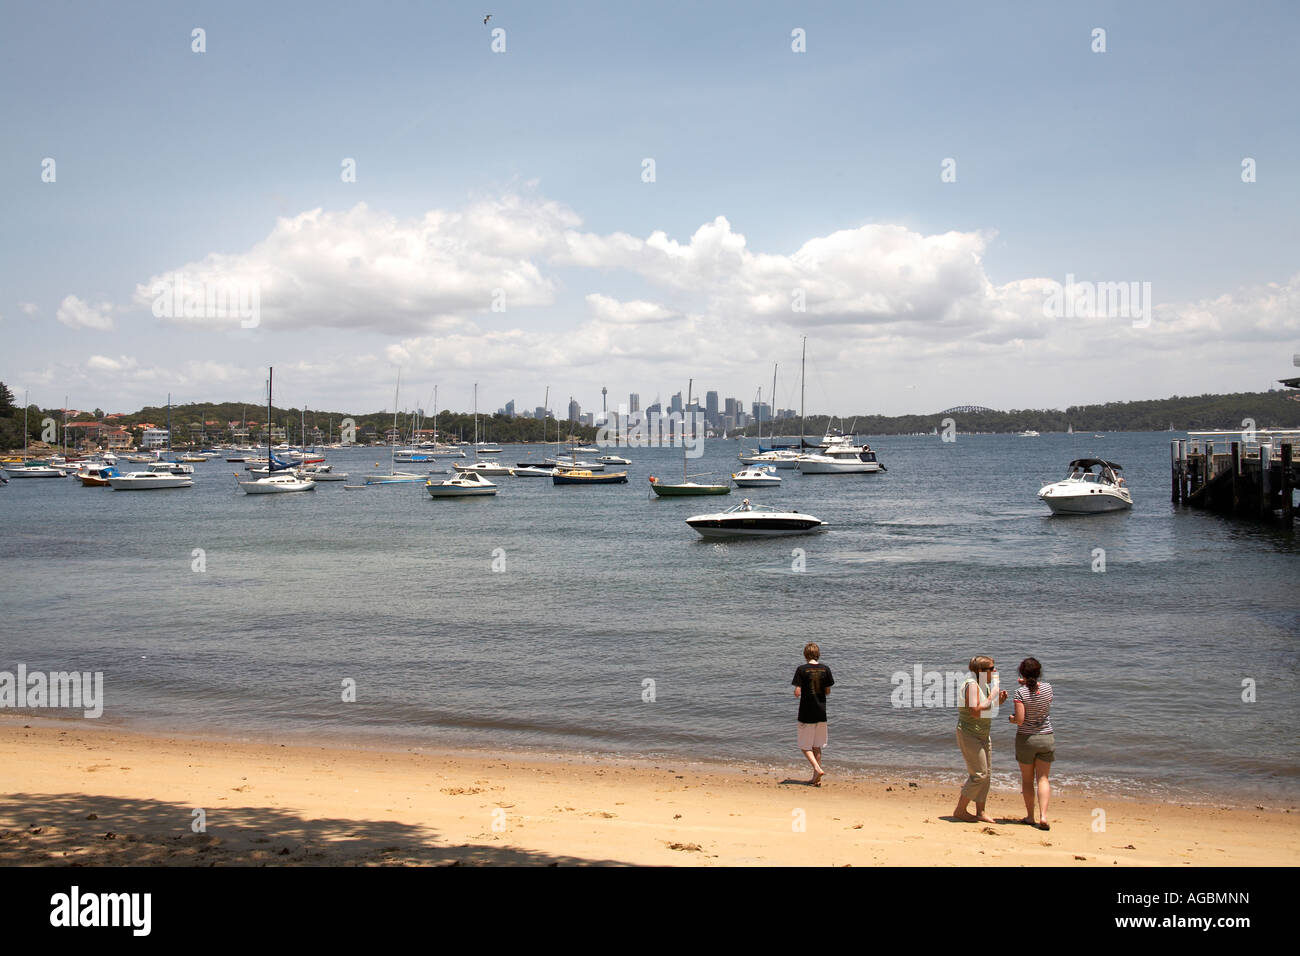 Beach and boats with people at Watsons Bay in Sydney New South Wales NSW Australia - Stock Image